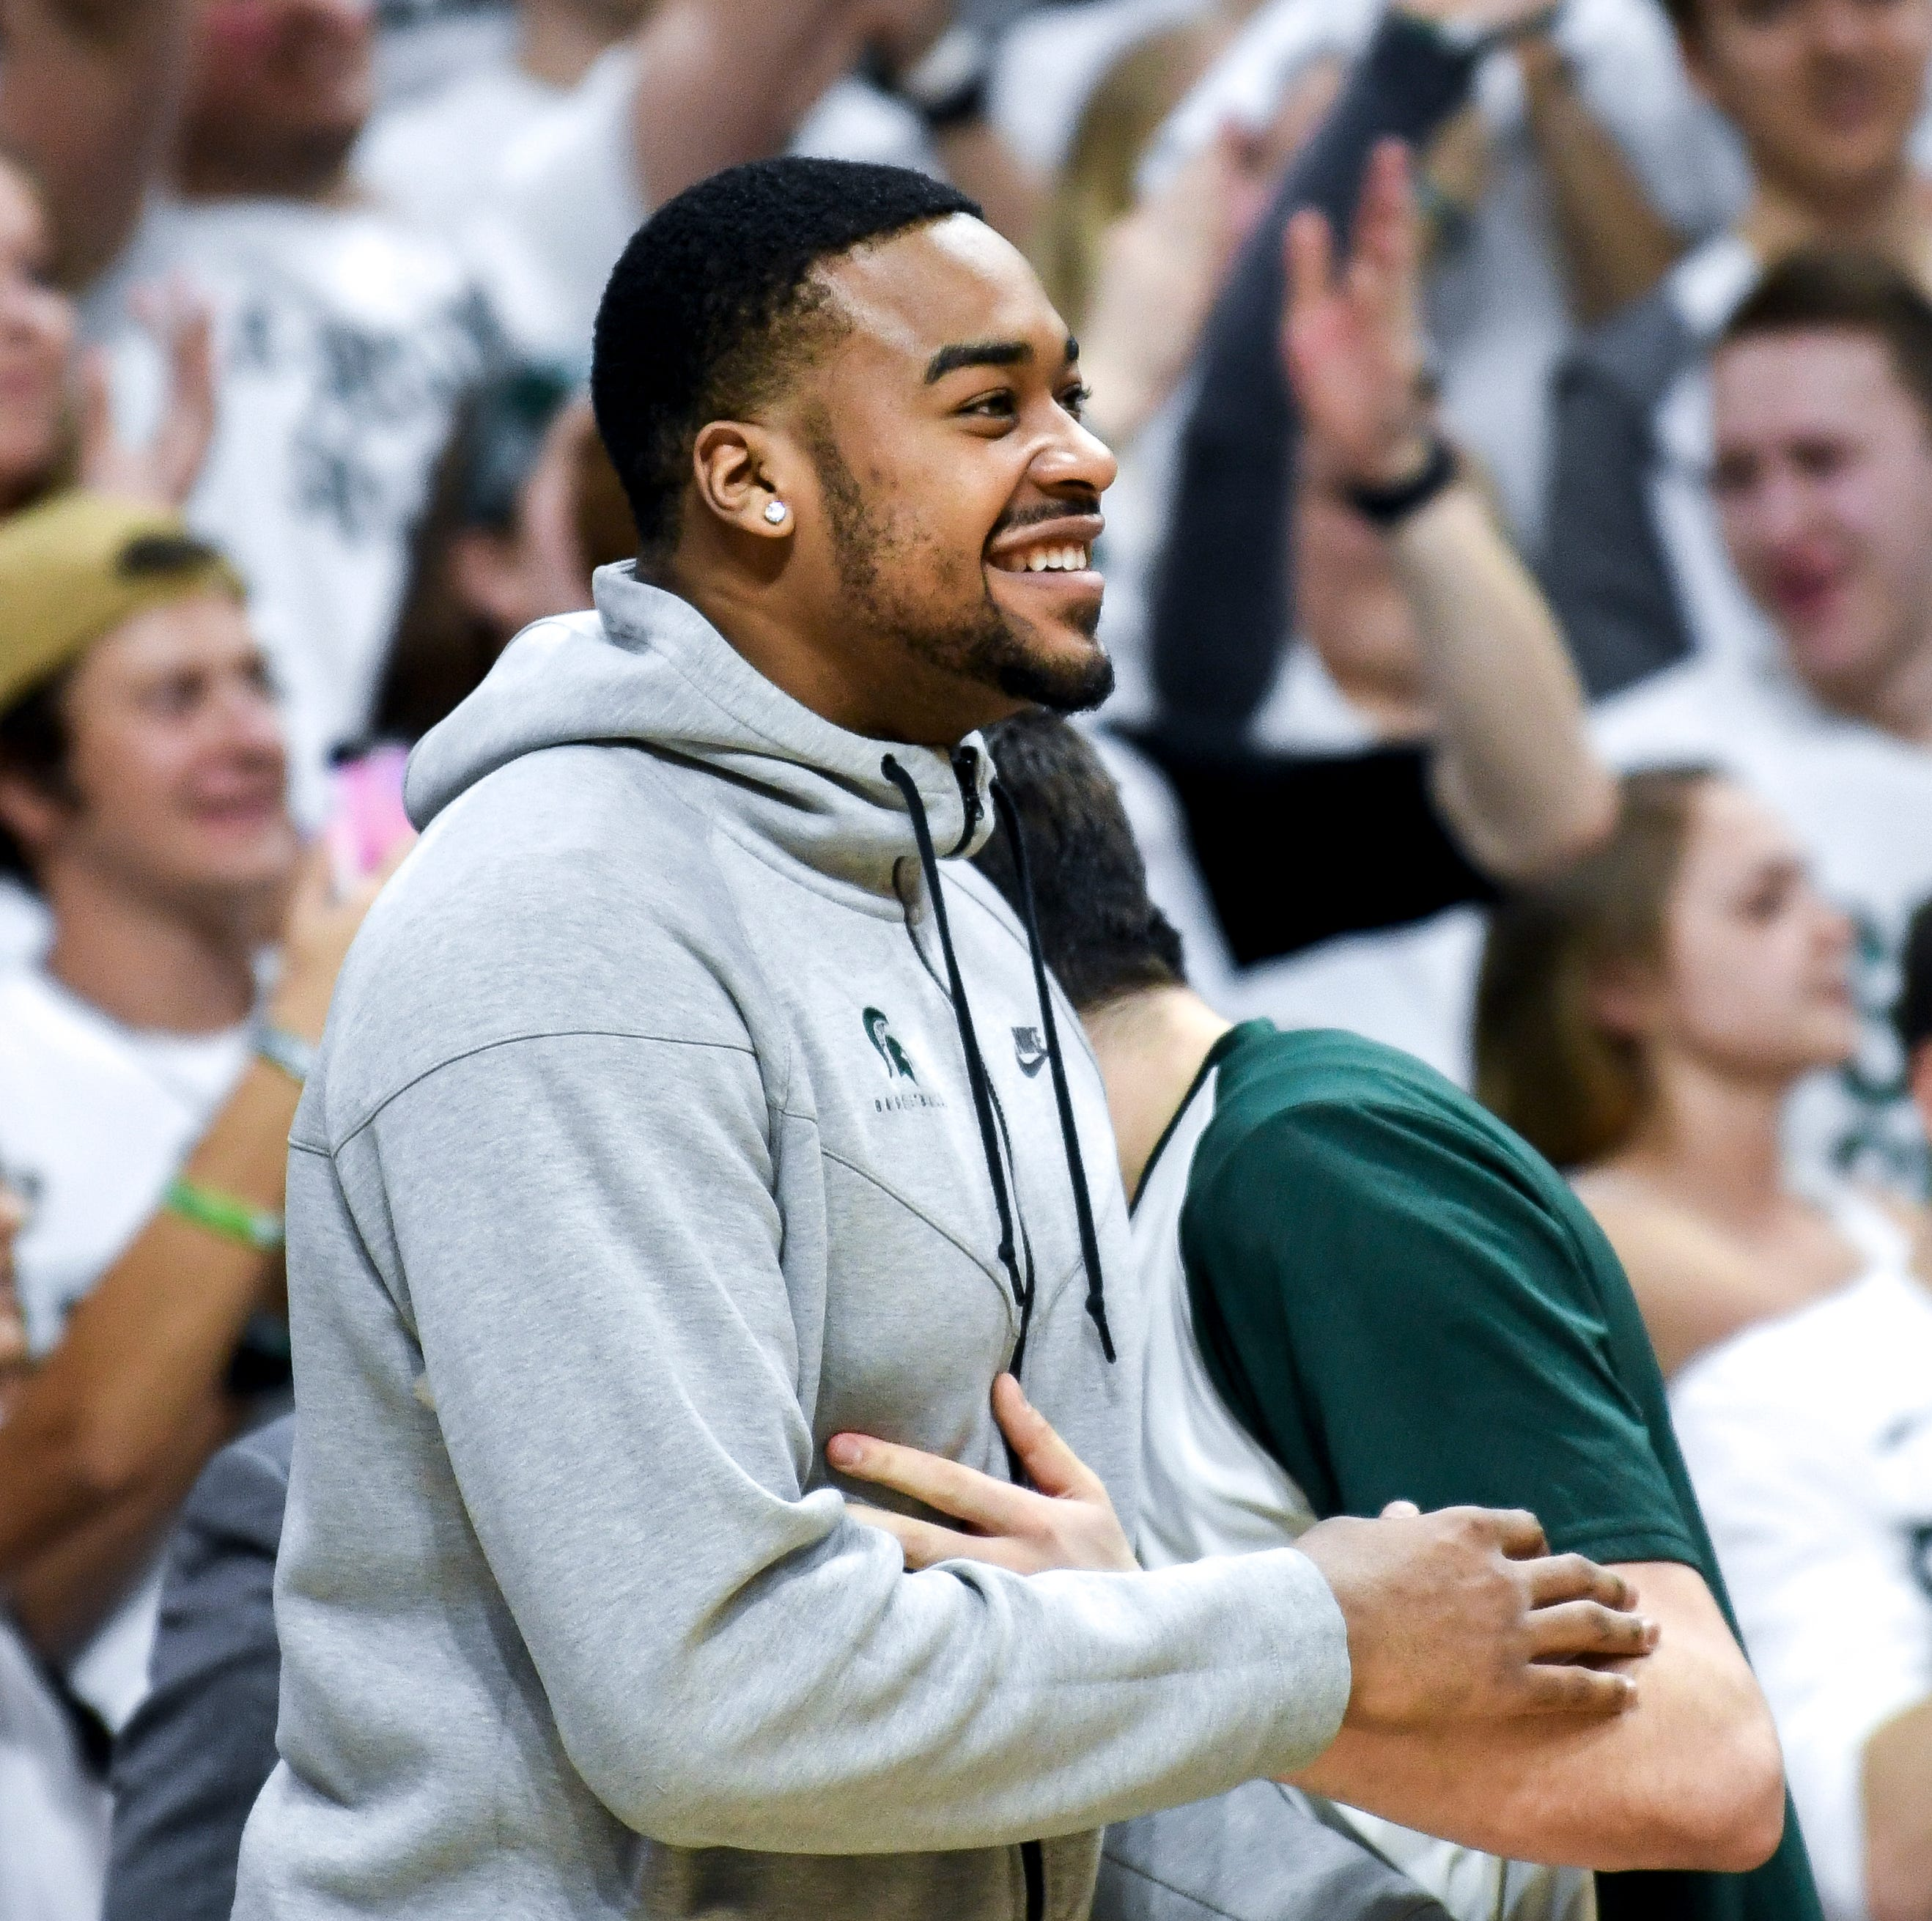 Couch: The Nick Ward dilemma – why reintegrating the big fella is 'delicate' for MSU hoops